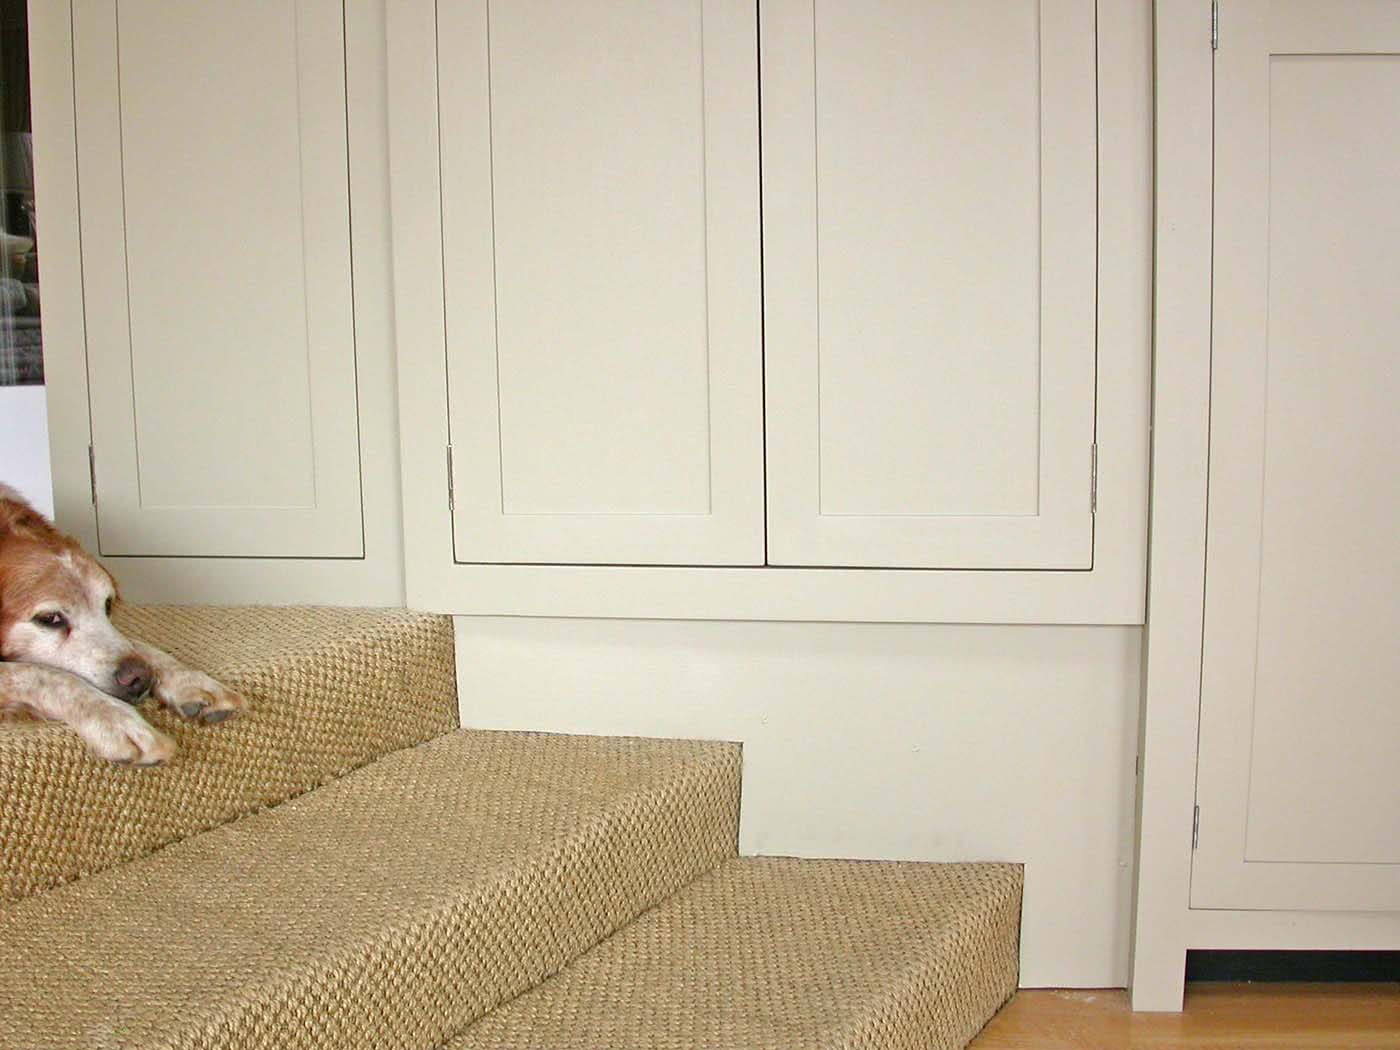 Close up of new kitchen cabinets fitted snugly over steps, with dog on top of steps